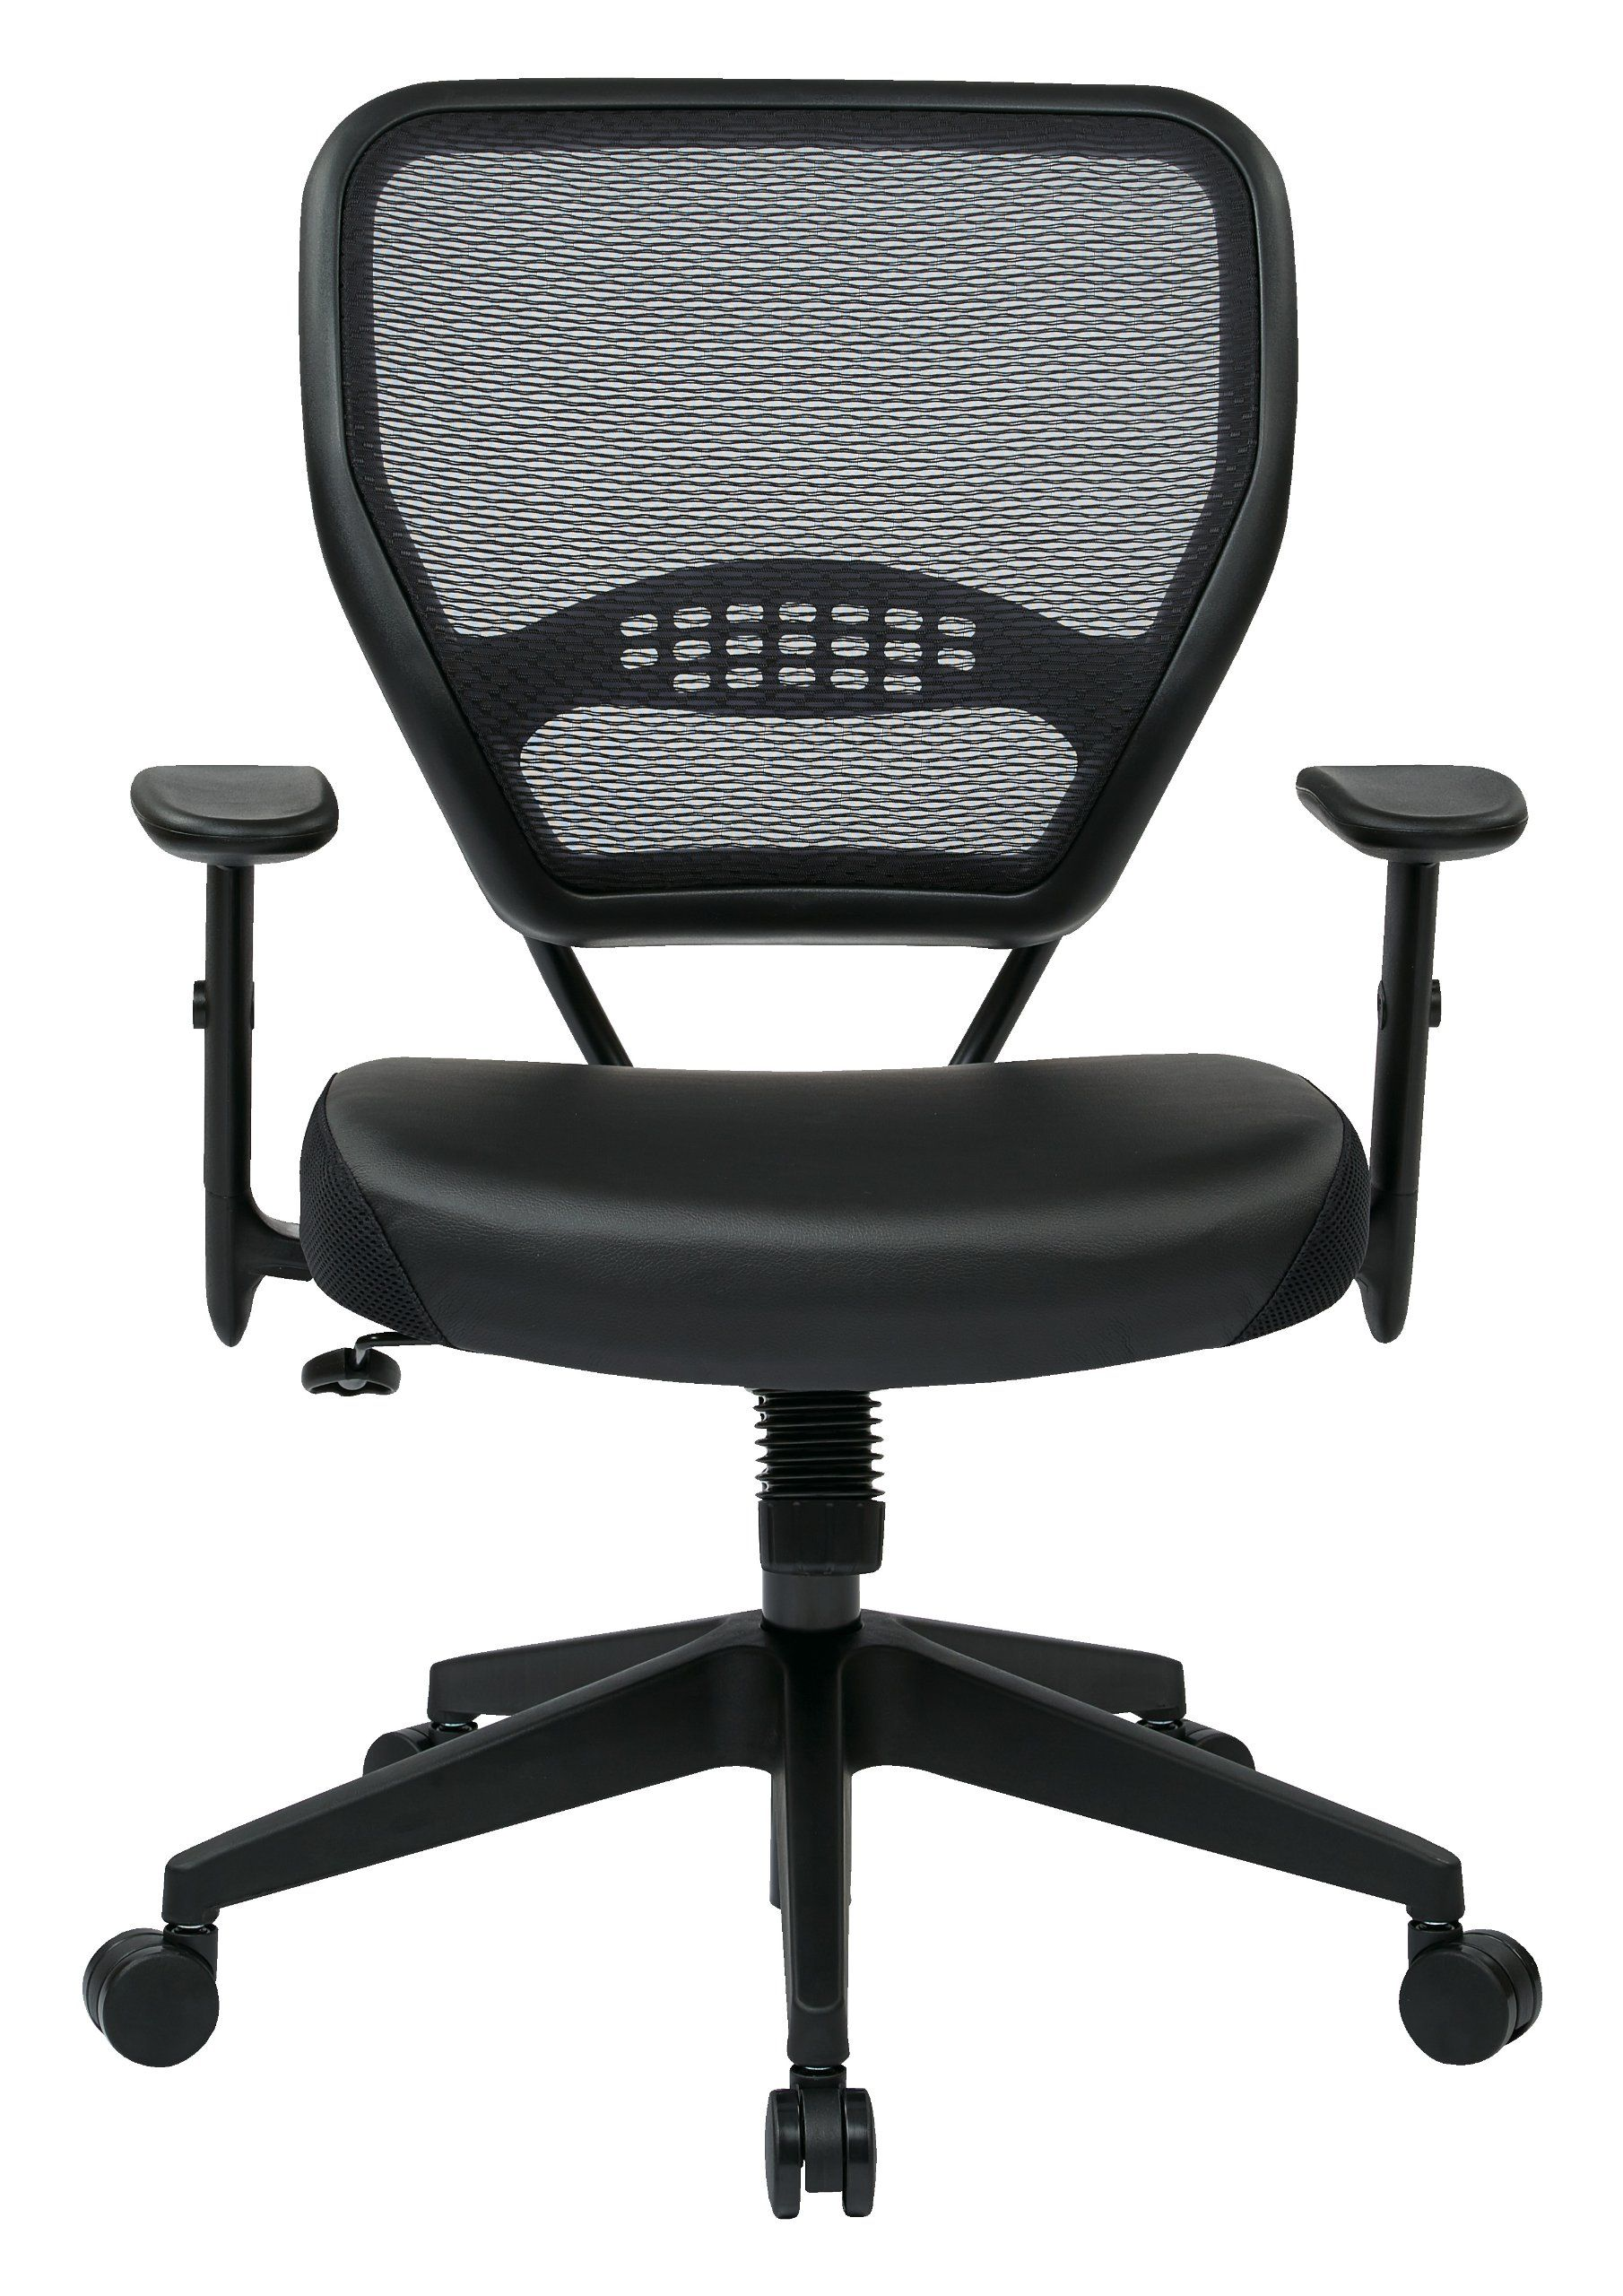 office star space professional air grid back managers chair with eco